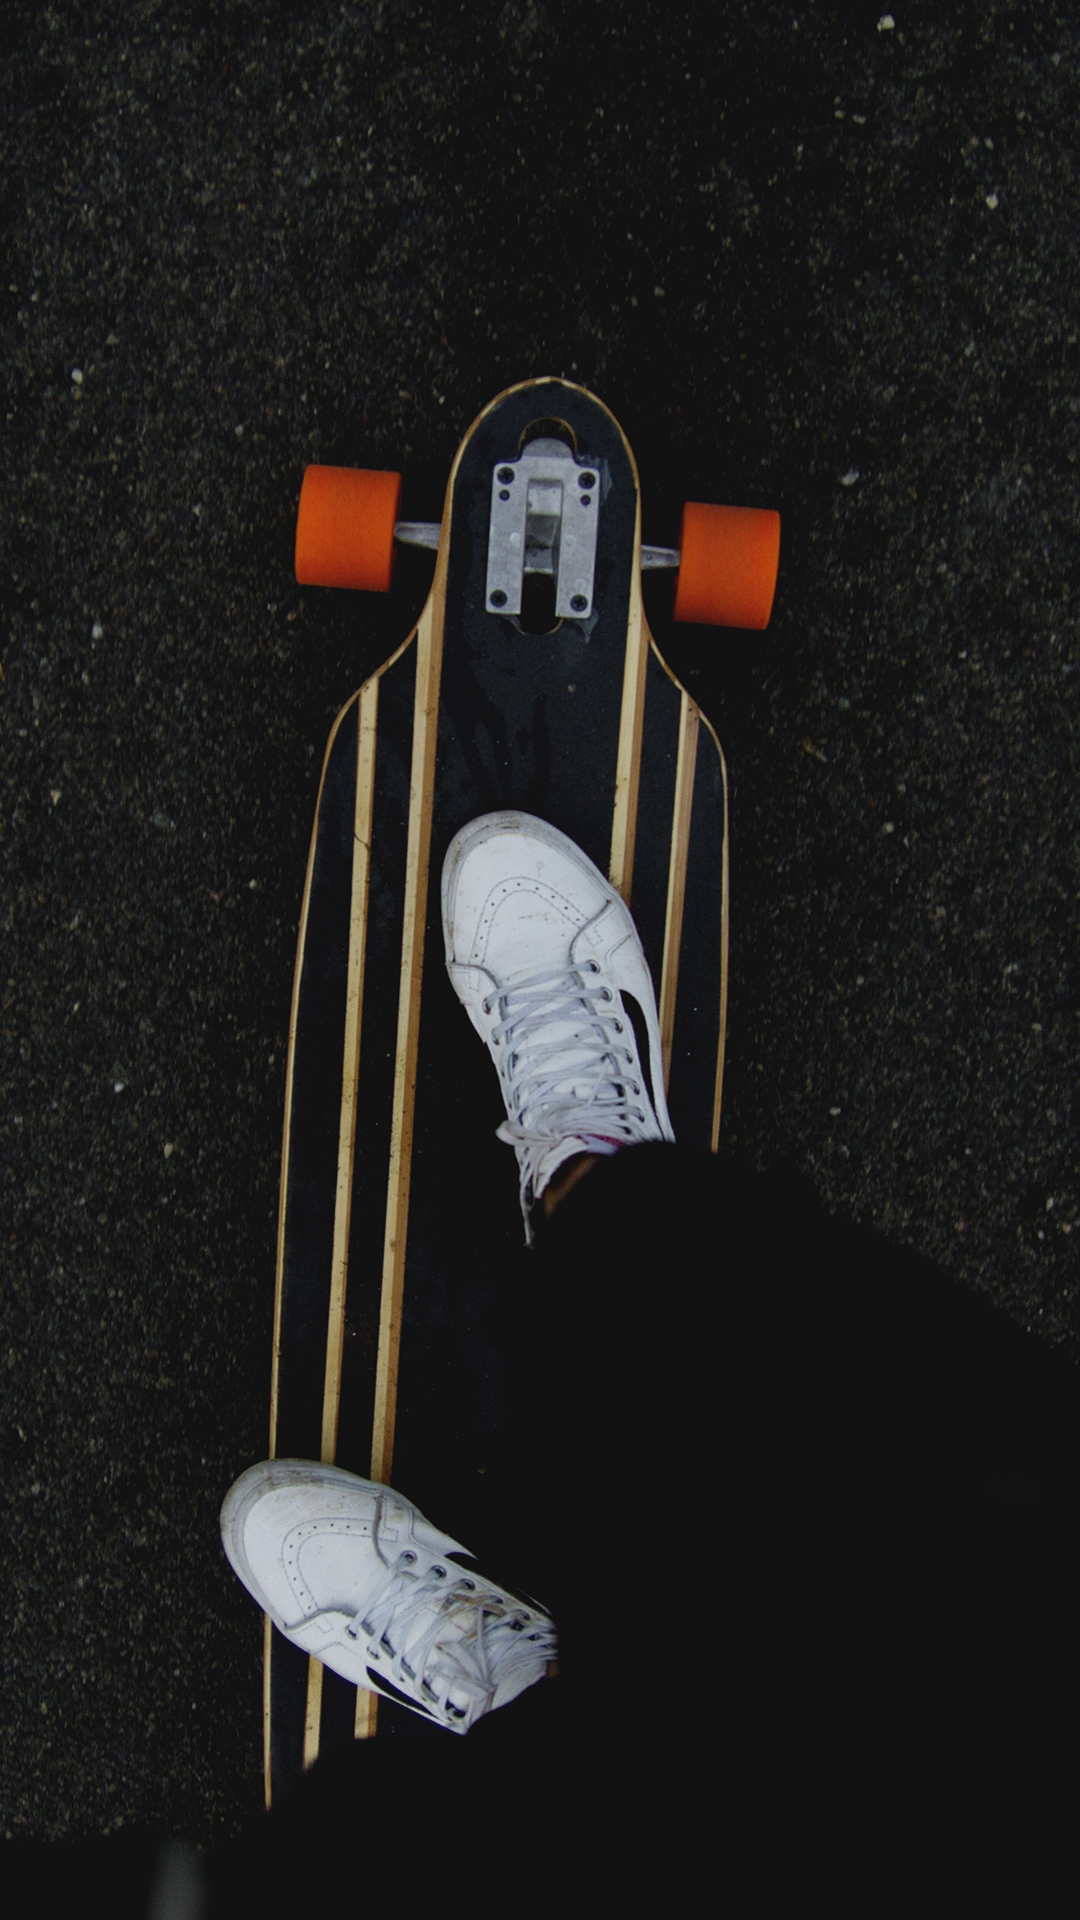 skate wallpaper iphone skateboard 1080 x 1920 hd wallpaper 12982